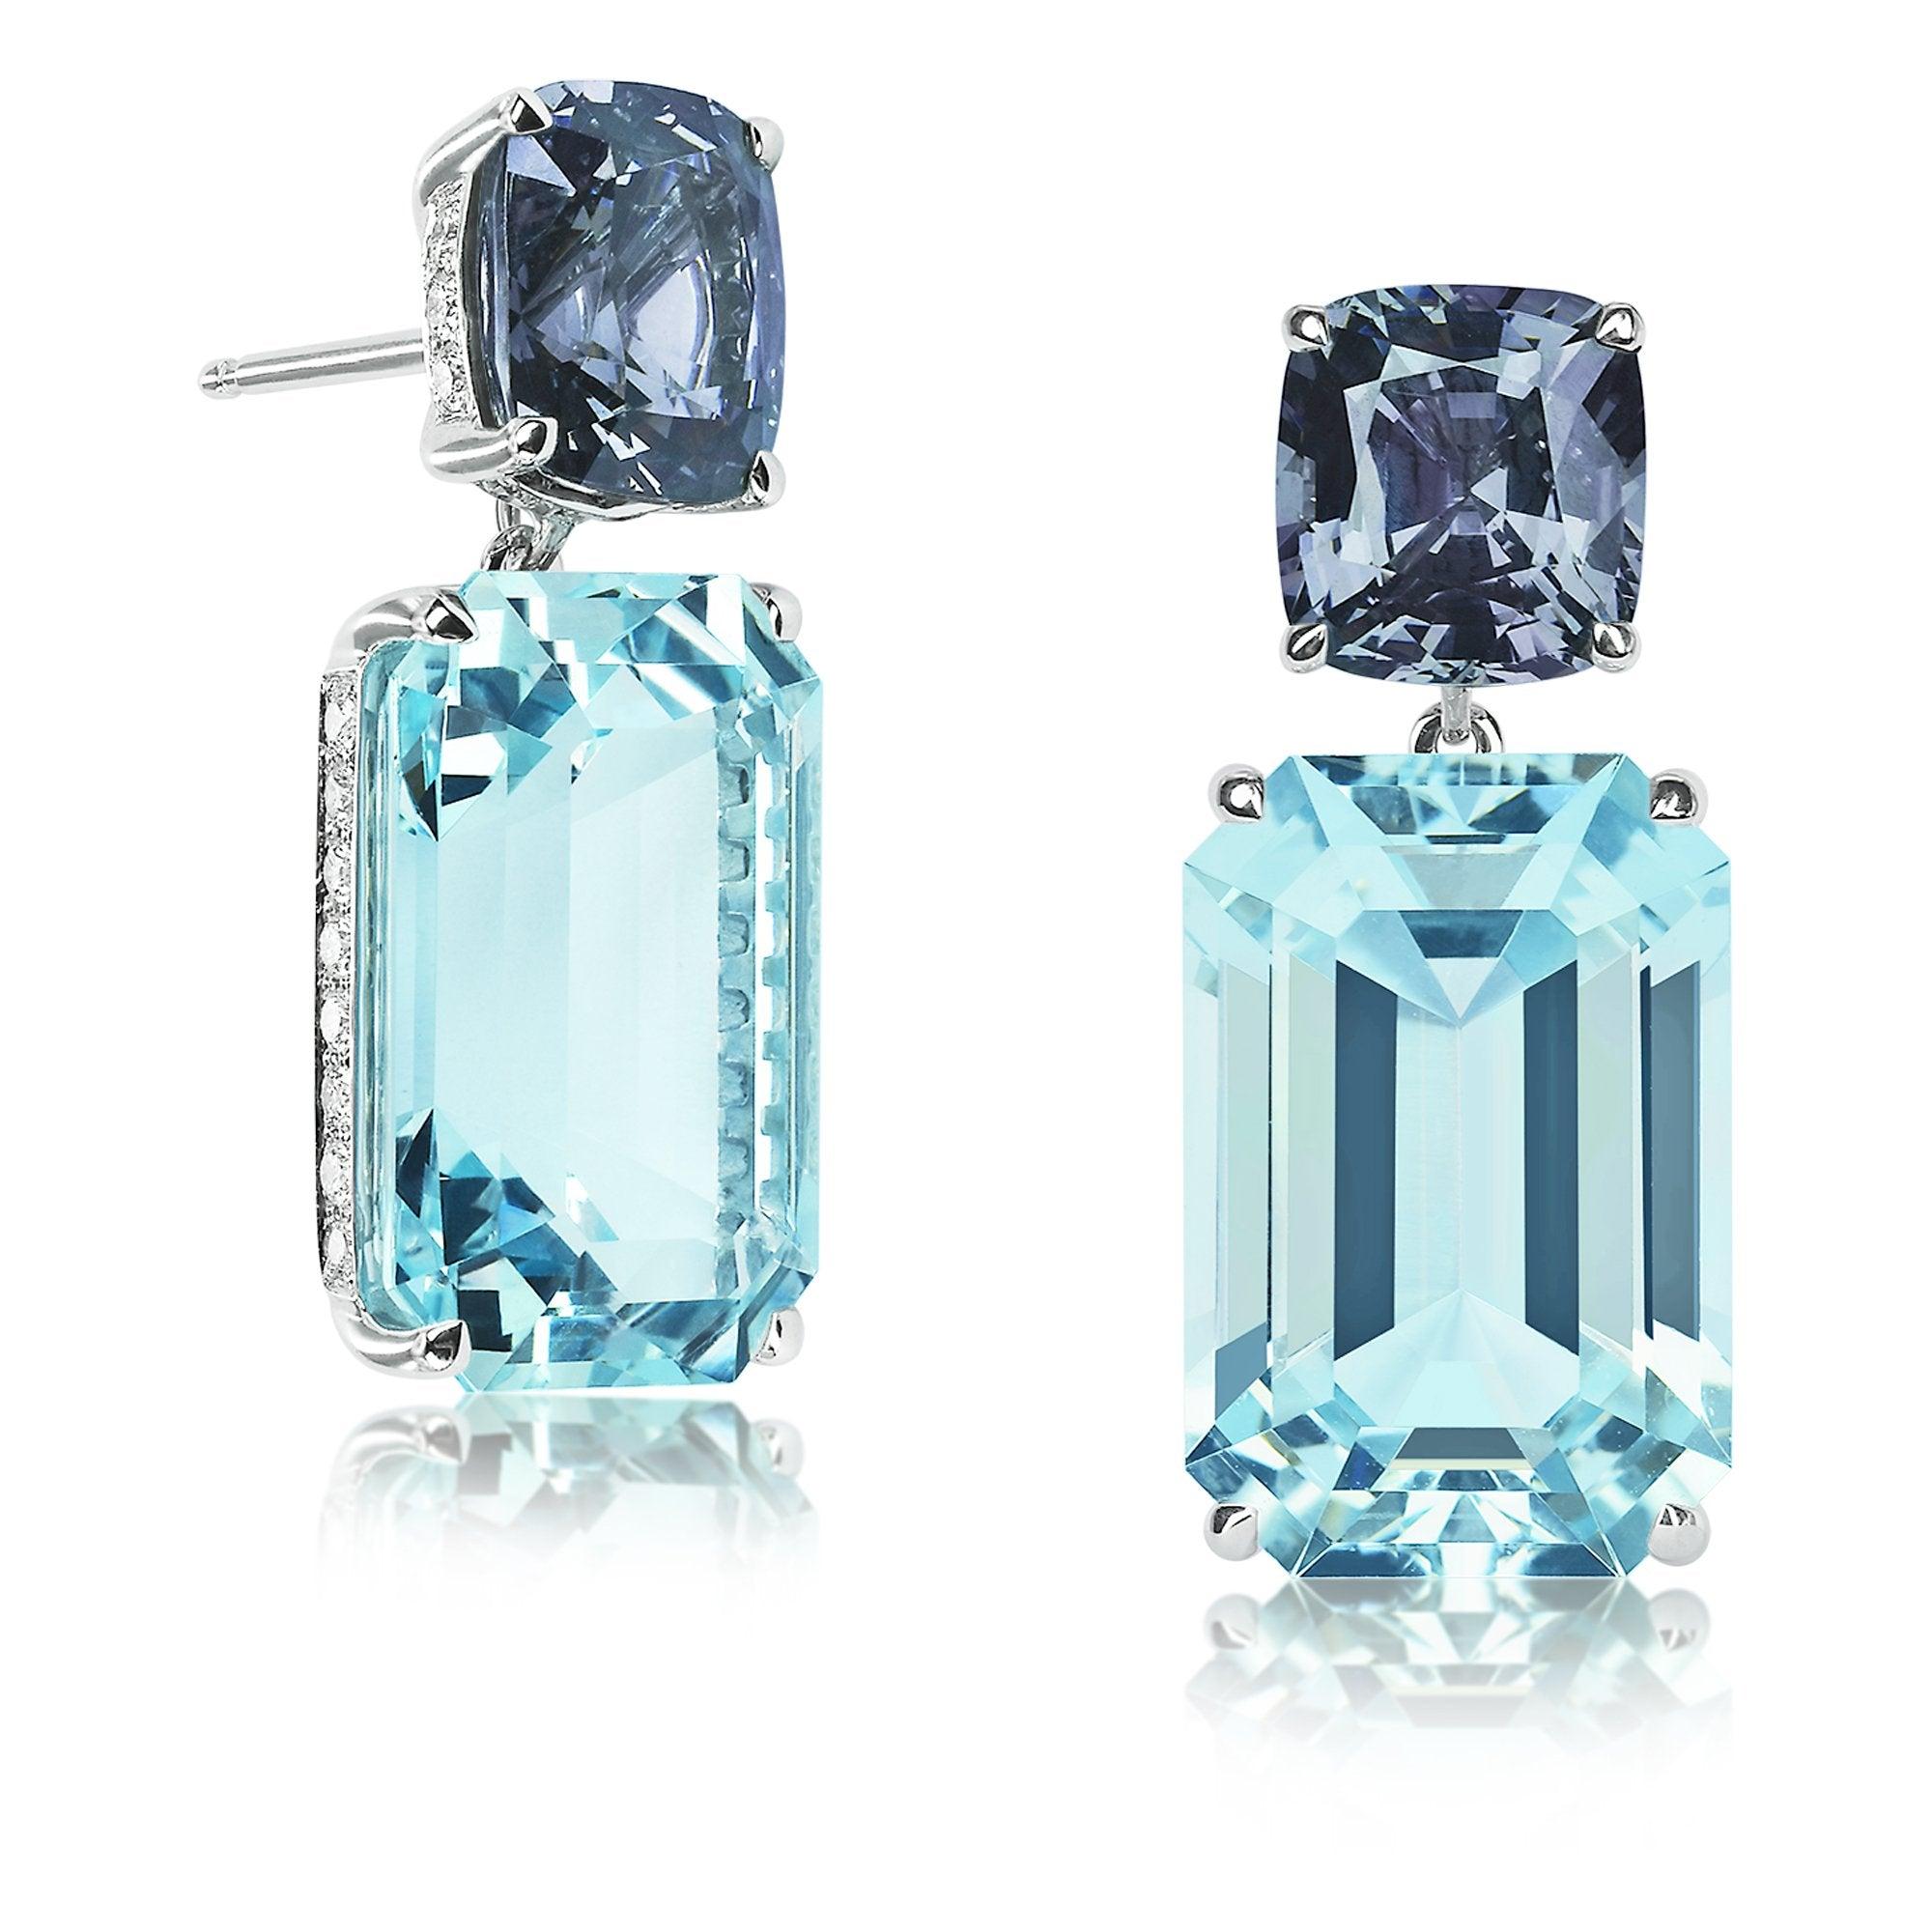 Gray Spinel and Aquamarine Earrings - Paolo Costagli